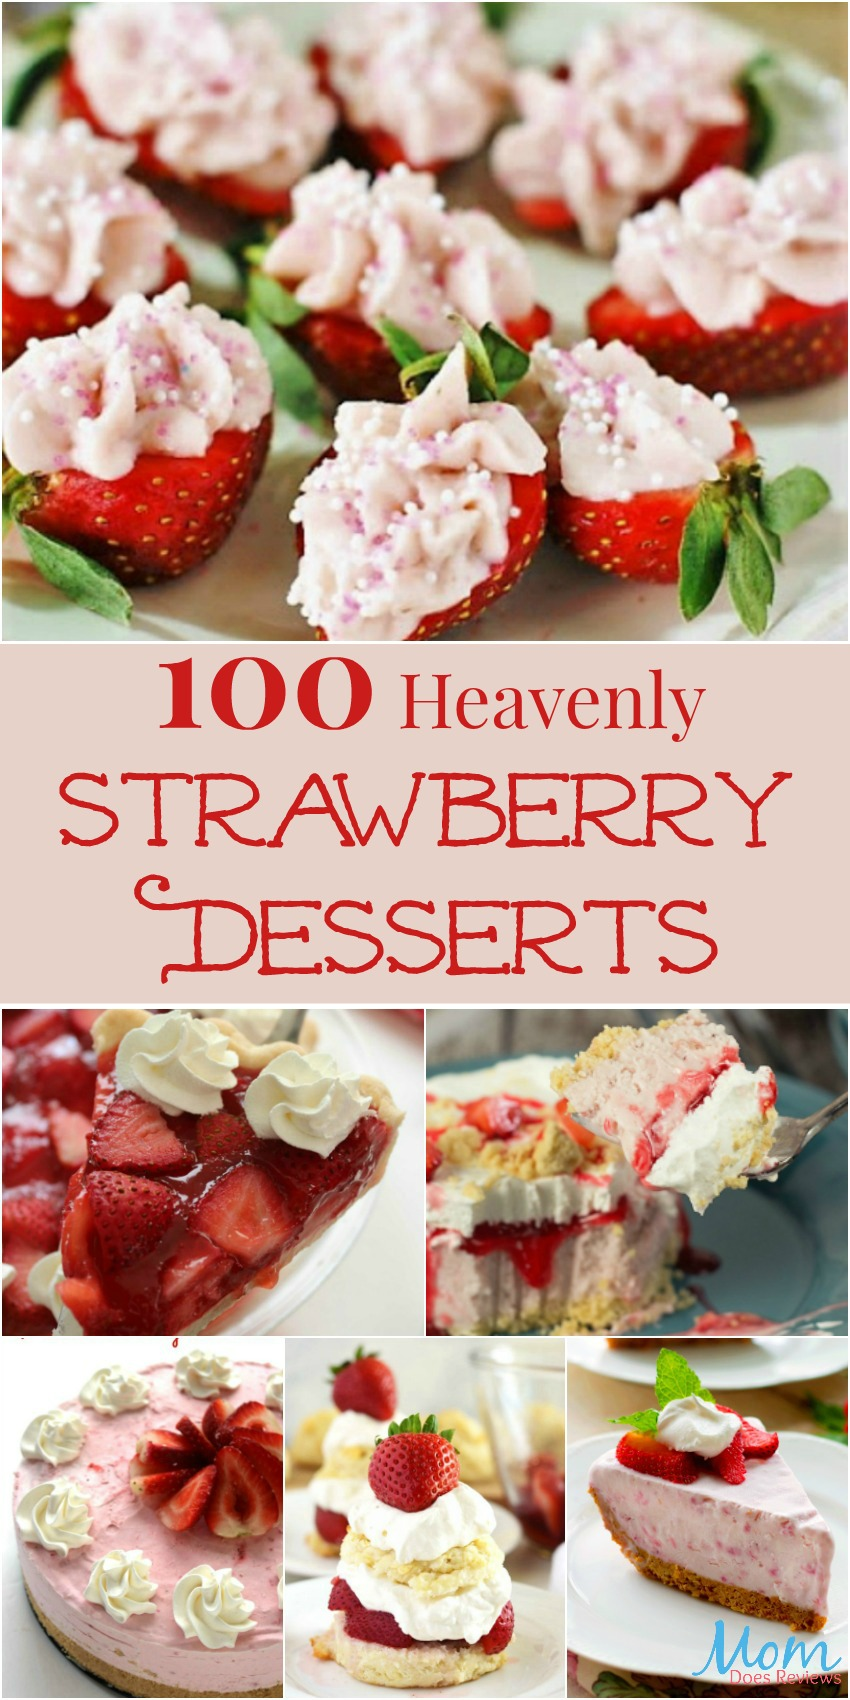 100 Heavenly Strawberry Desserts You Have to Try